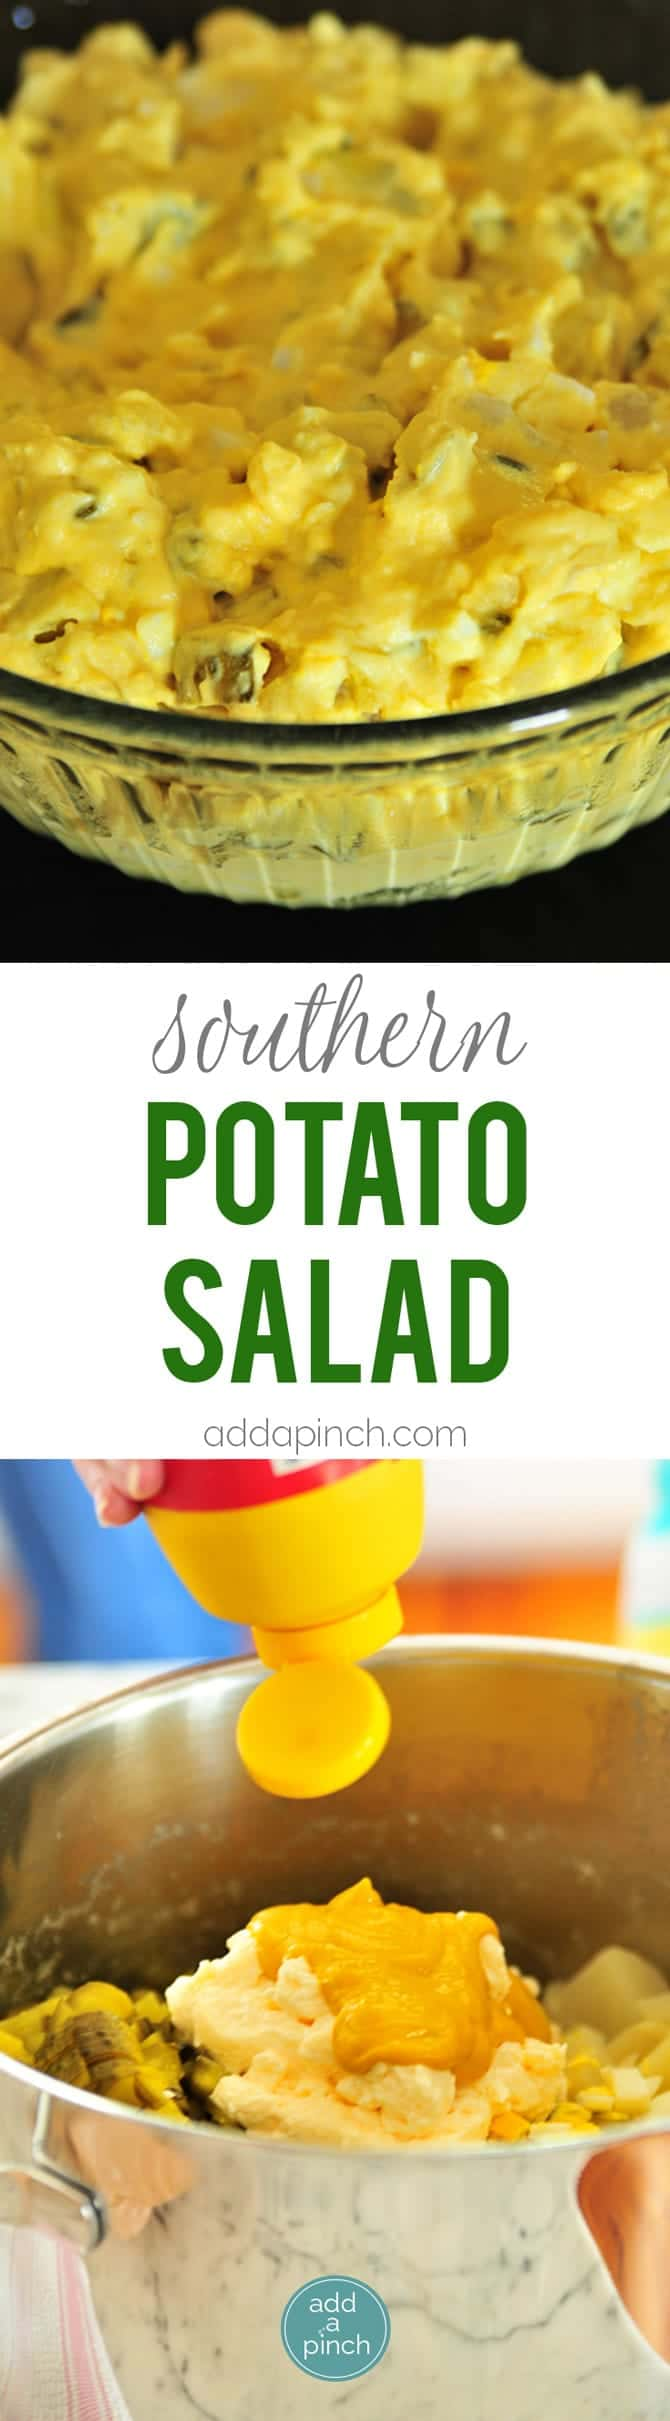 Southern Potato Salad Recipe - Southern Potato Salad is a classic recipe perfect for Sunday suppers, summertime lunches, picnics, reunions, and every possible celebration! This potato salad recipe is a family favorite! // addapinch.com